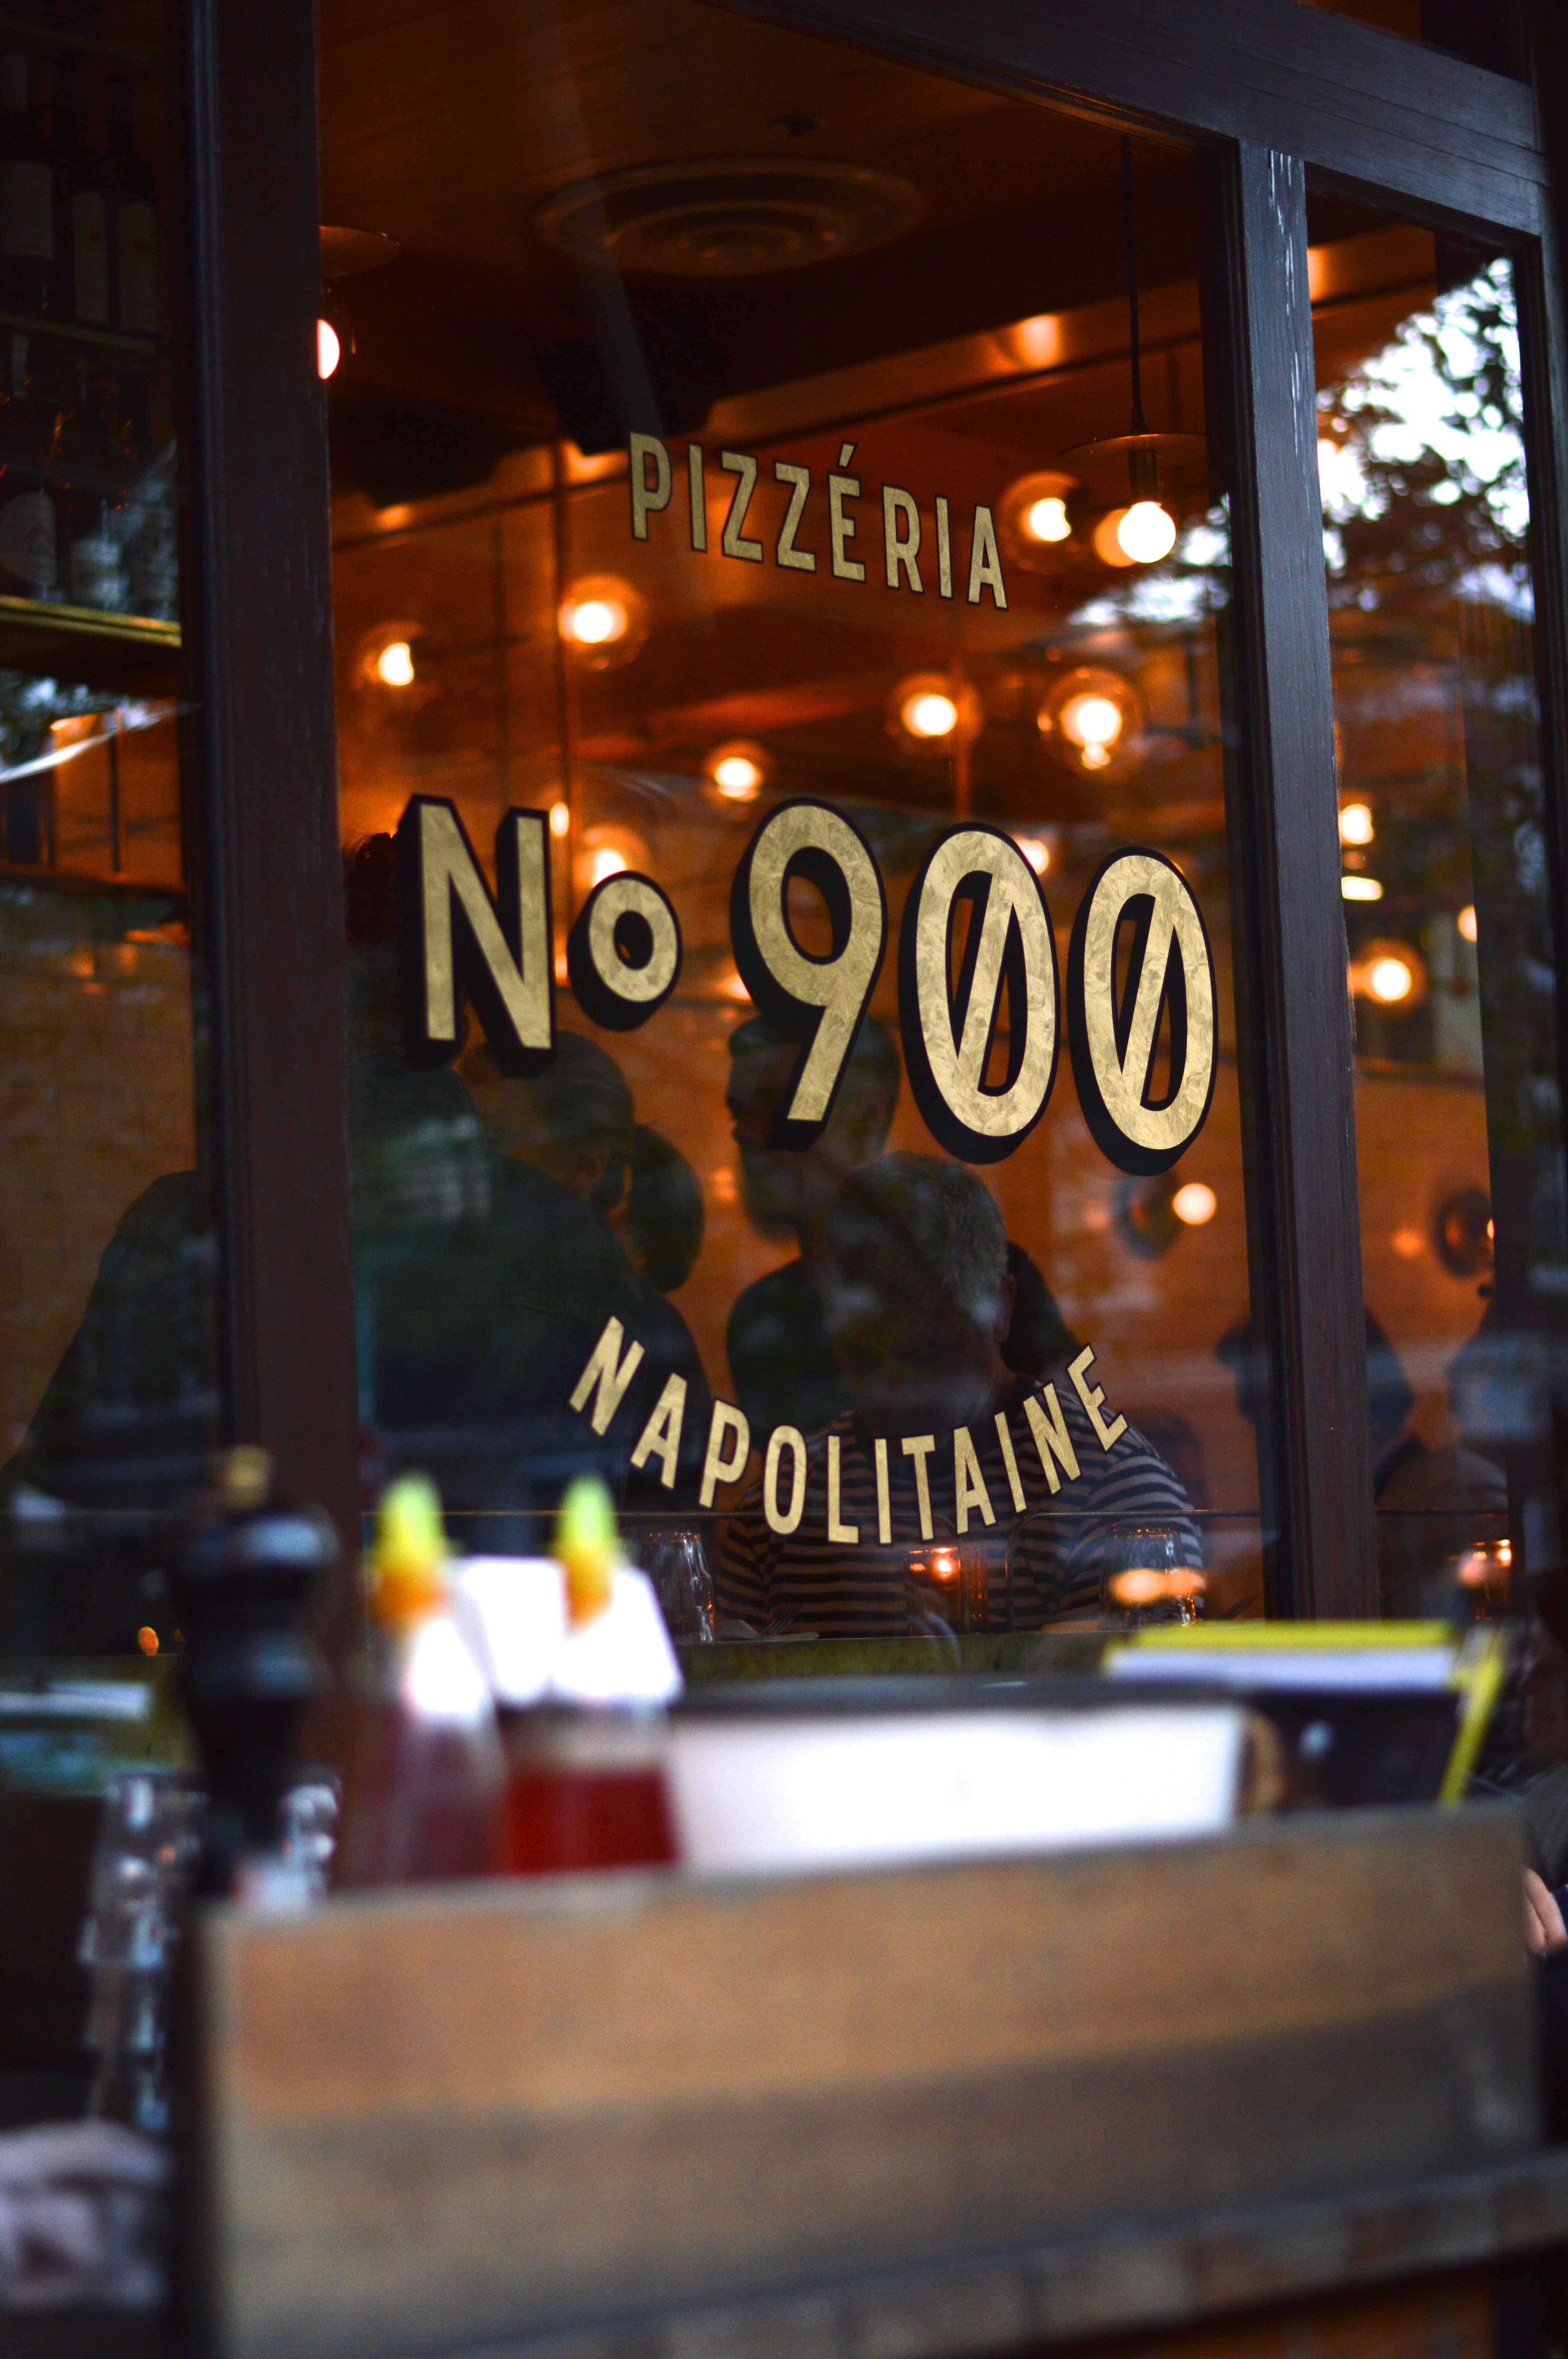 My Montreal Travel Guide | No 900 Pizzeria